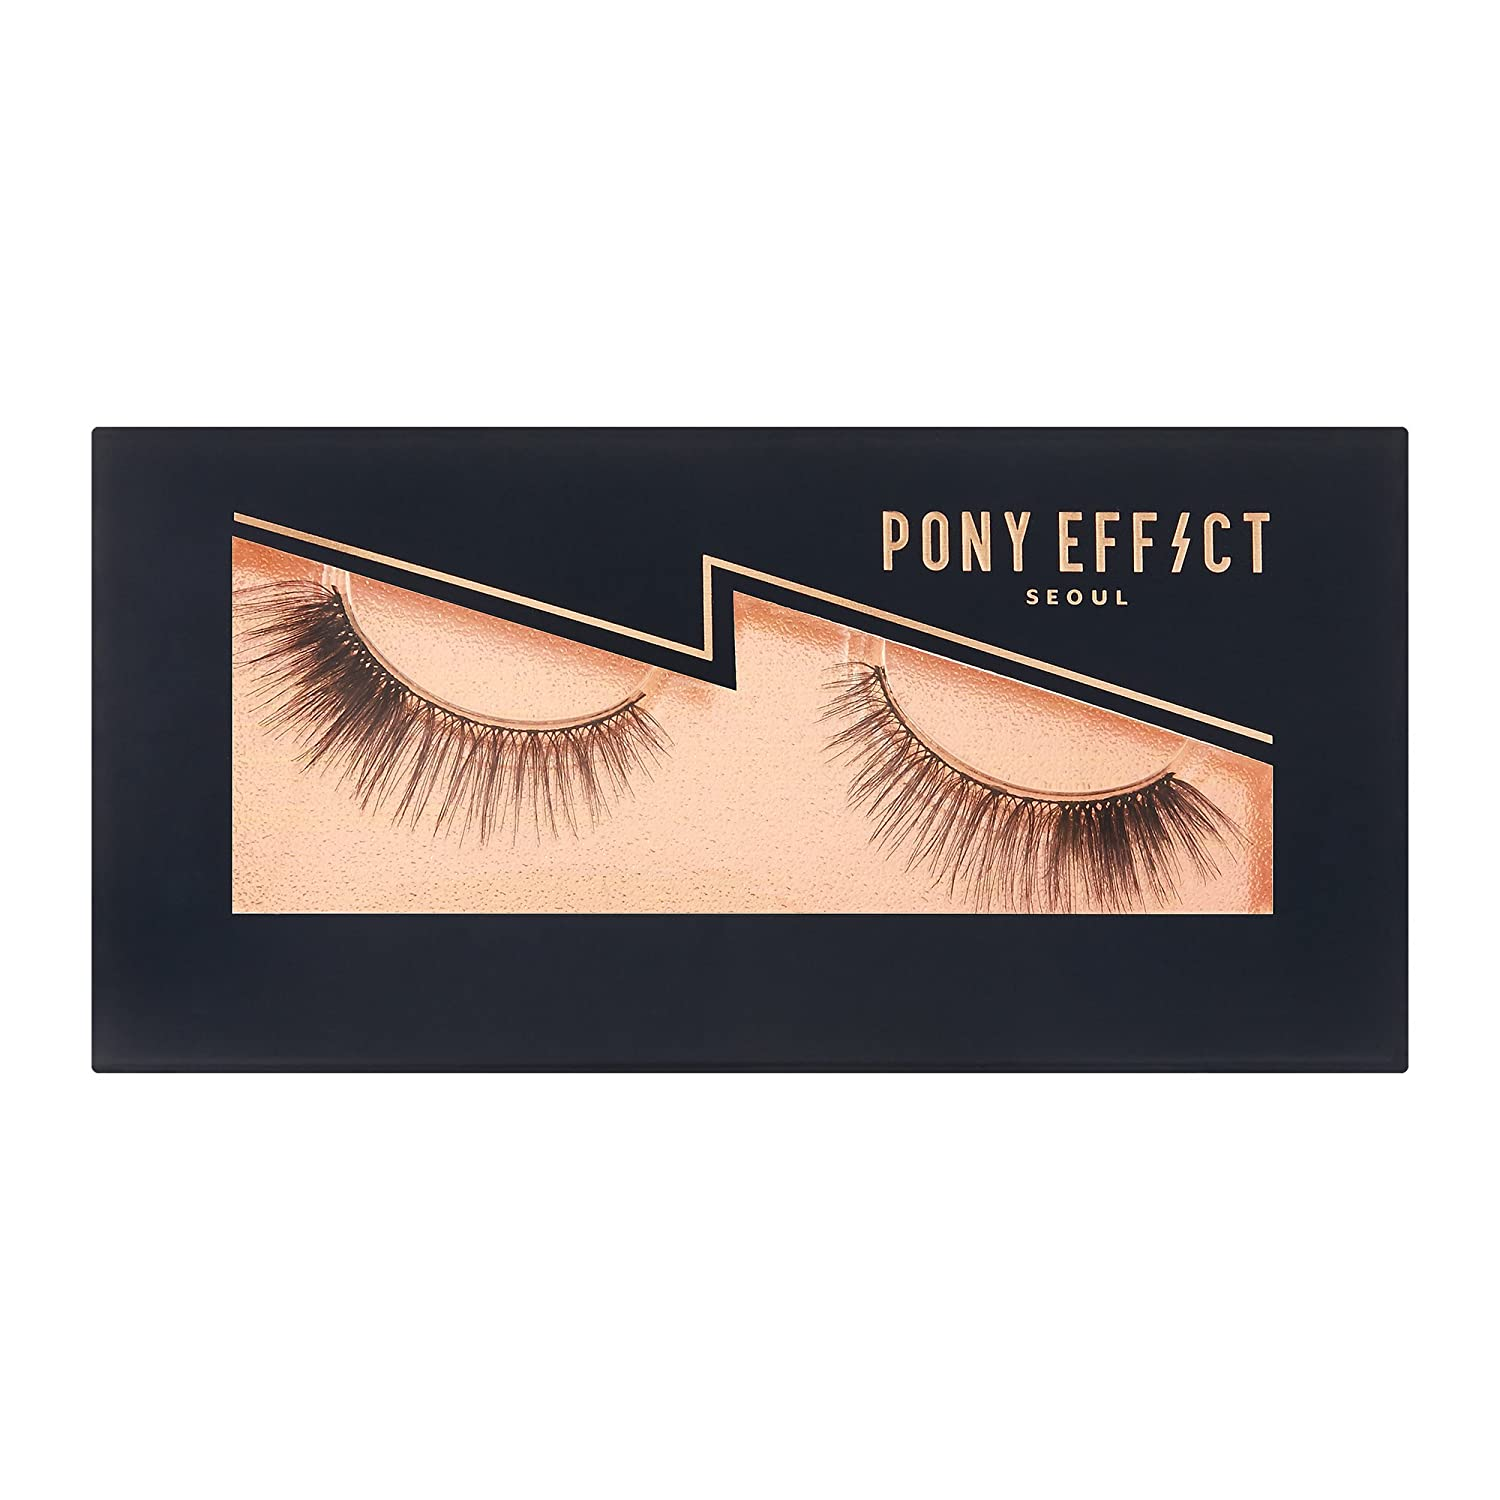 7f2f5bbb946 Amazon.com: PONY EFFECT Effective False Eyelashes (Bittersweet): Beauty